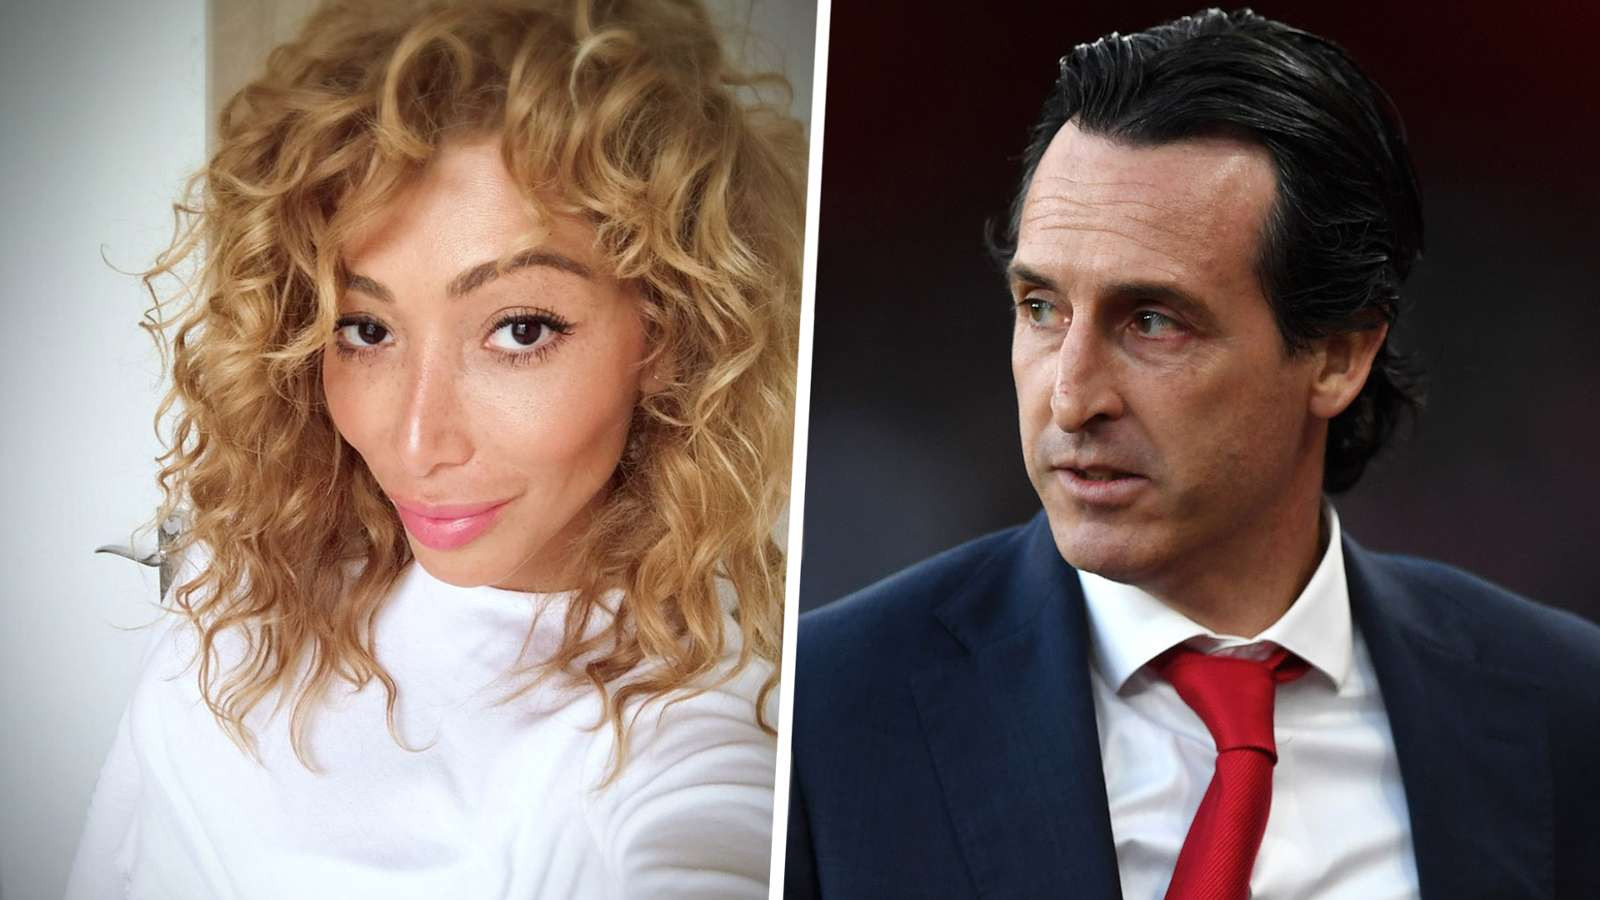 'He told me I was a white witch' – Former Arsenal coach Unai Emery's ex girlfriend reveals he blamed her for his Arsenal sack